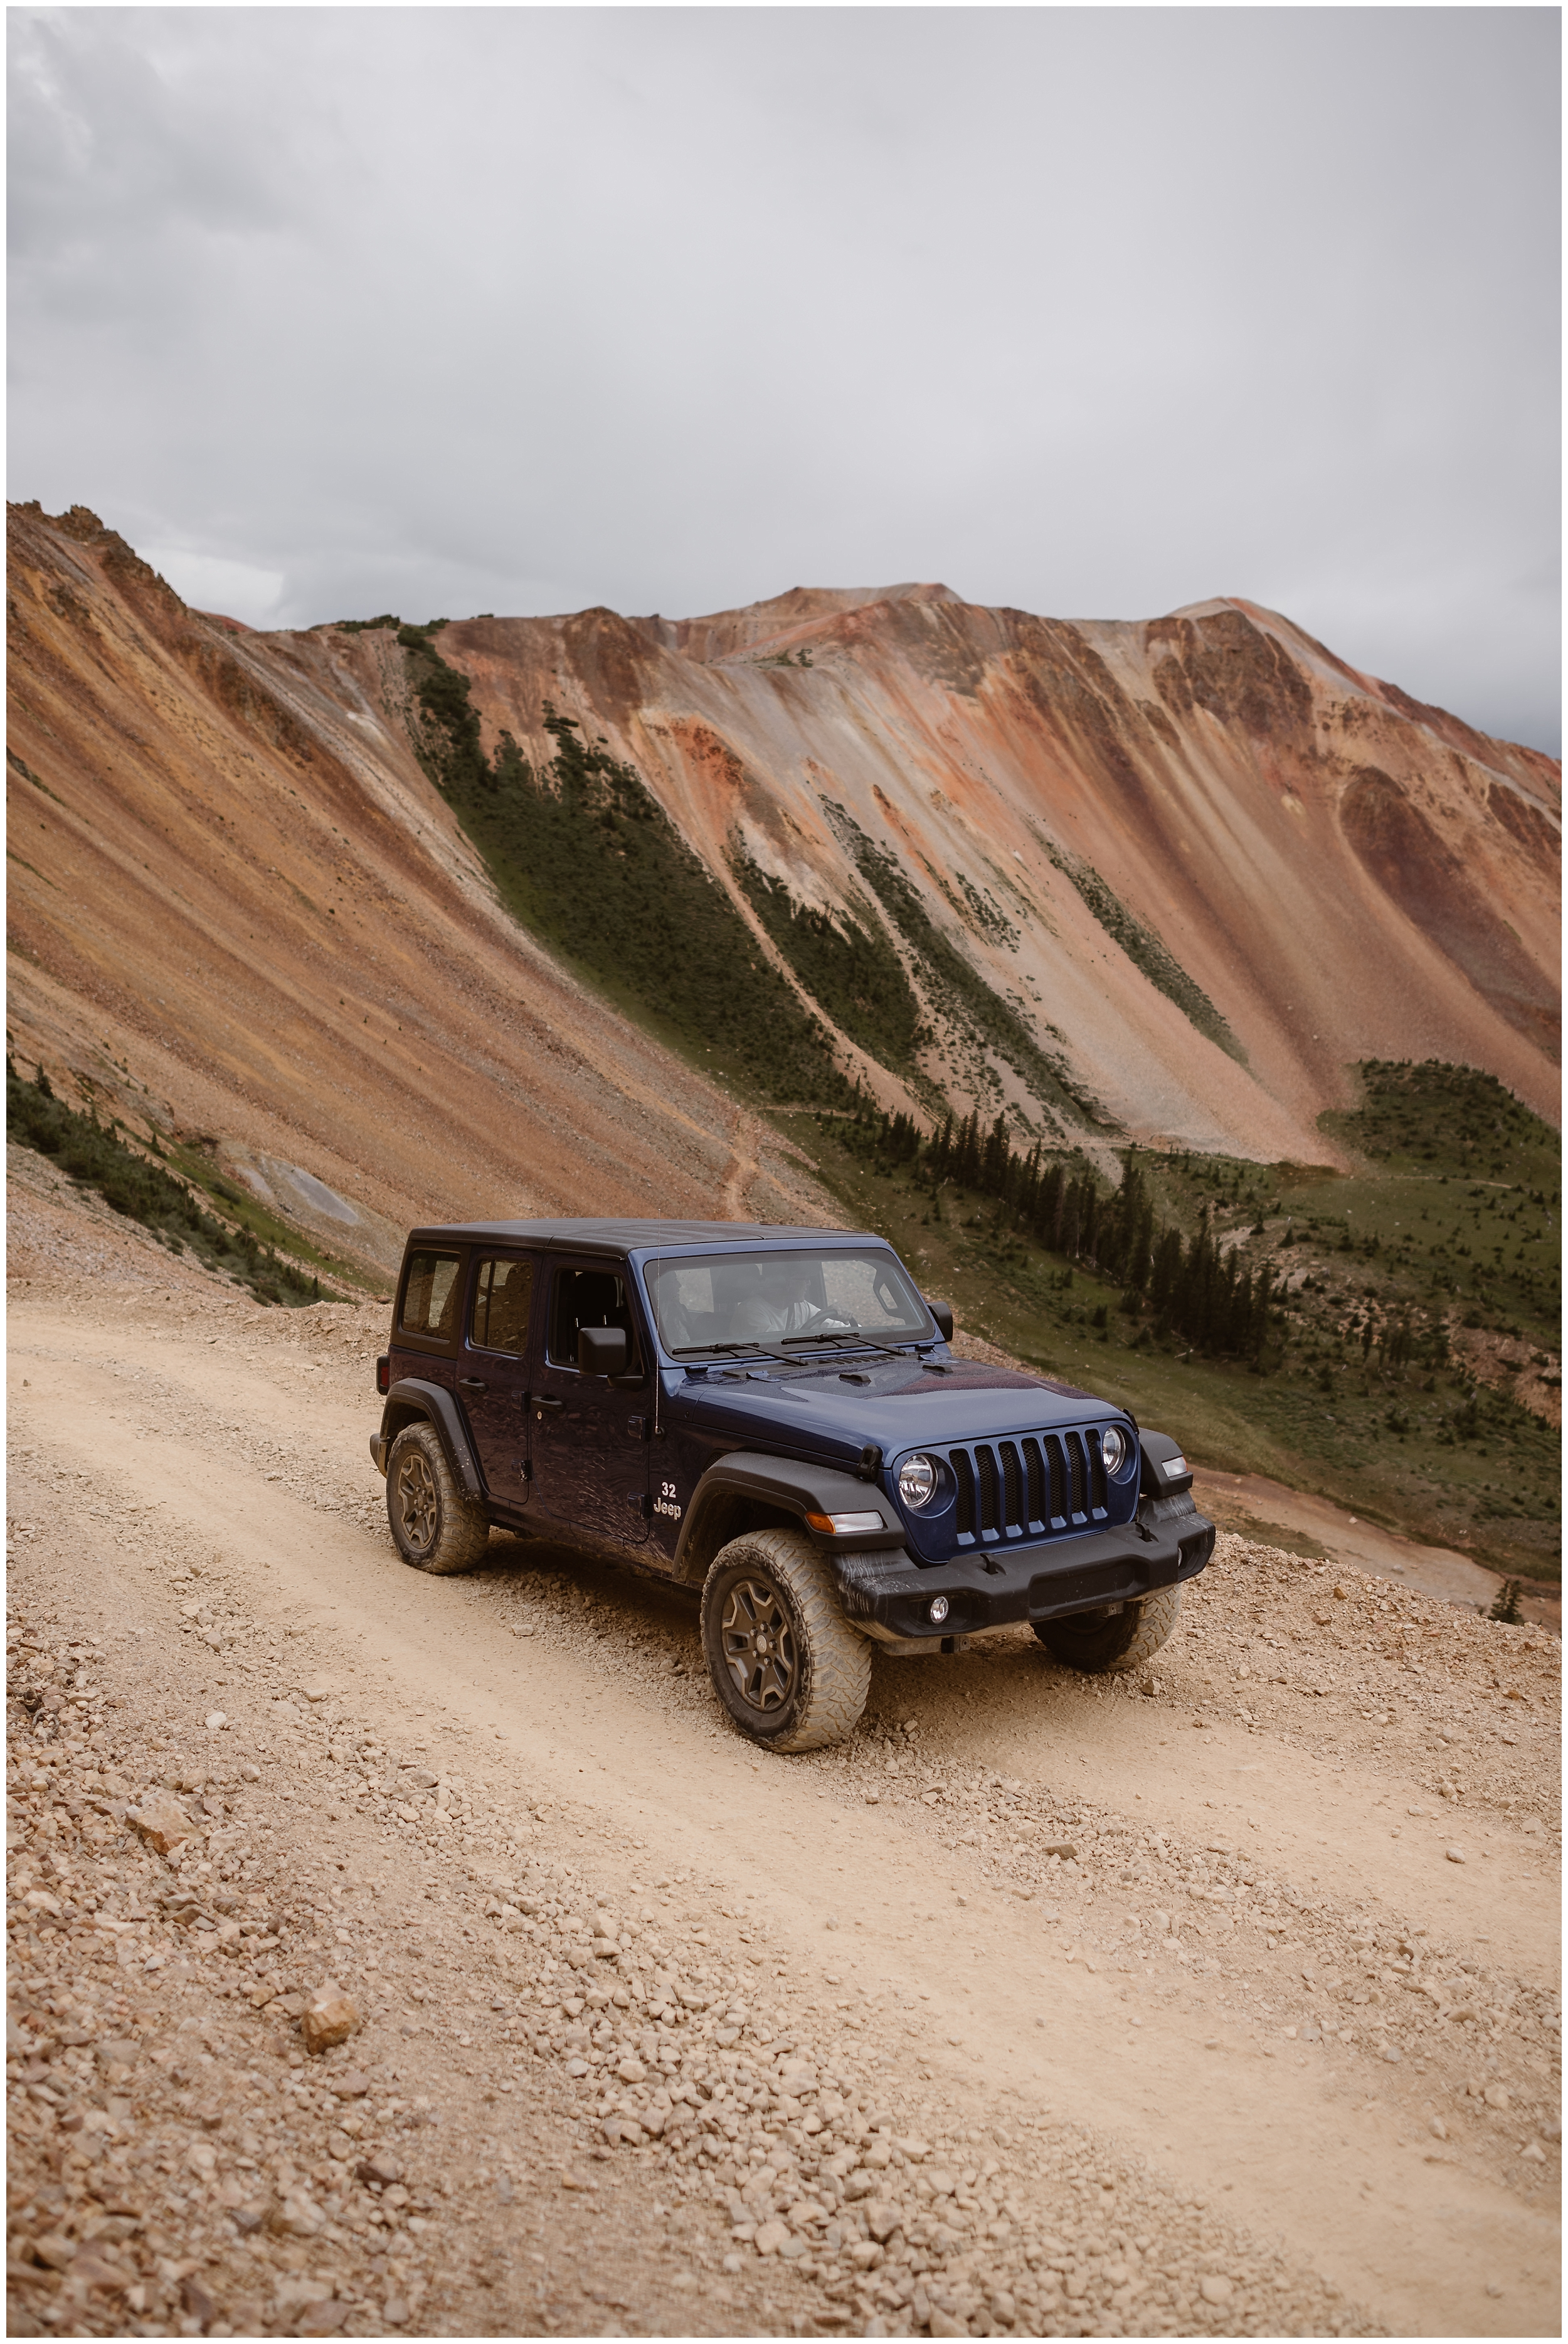 The adventure Jeep wedding car parks along the side of an off road 4x4 path so that Katie and Logan can prepare for their Colorado mountain wedding. The red mountains in the background juxtapose against the navy blue color of the jeep and the green meadows far below them.